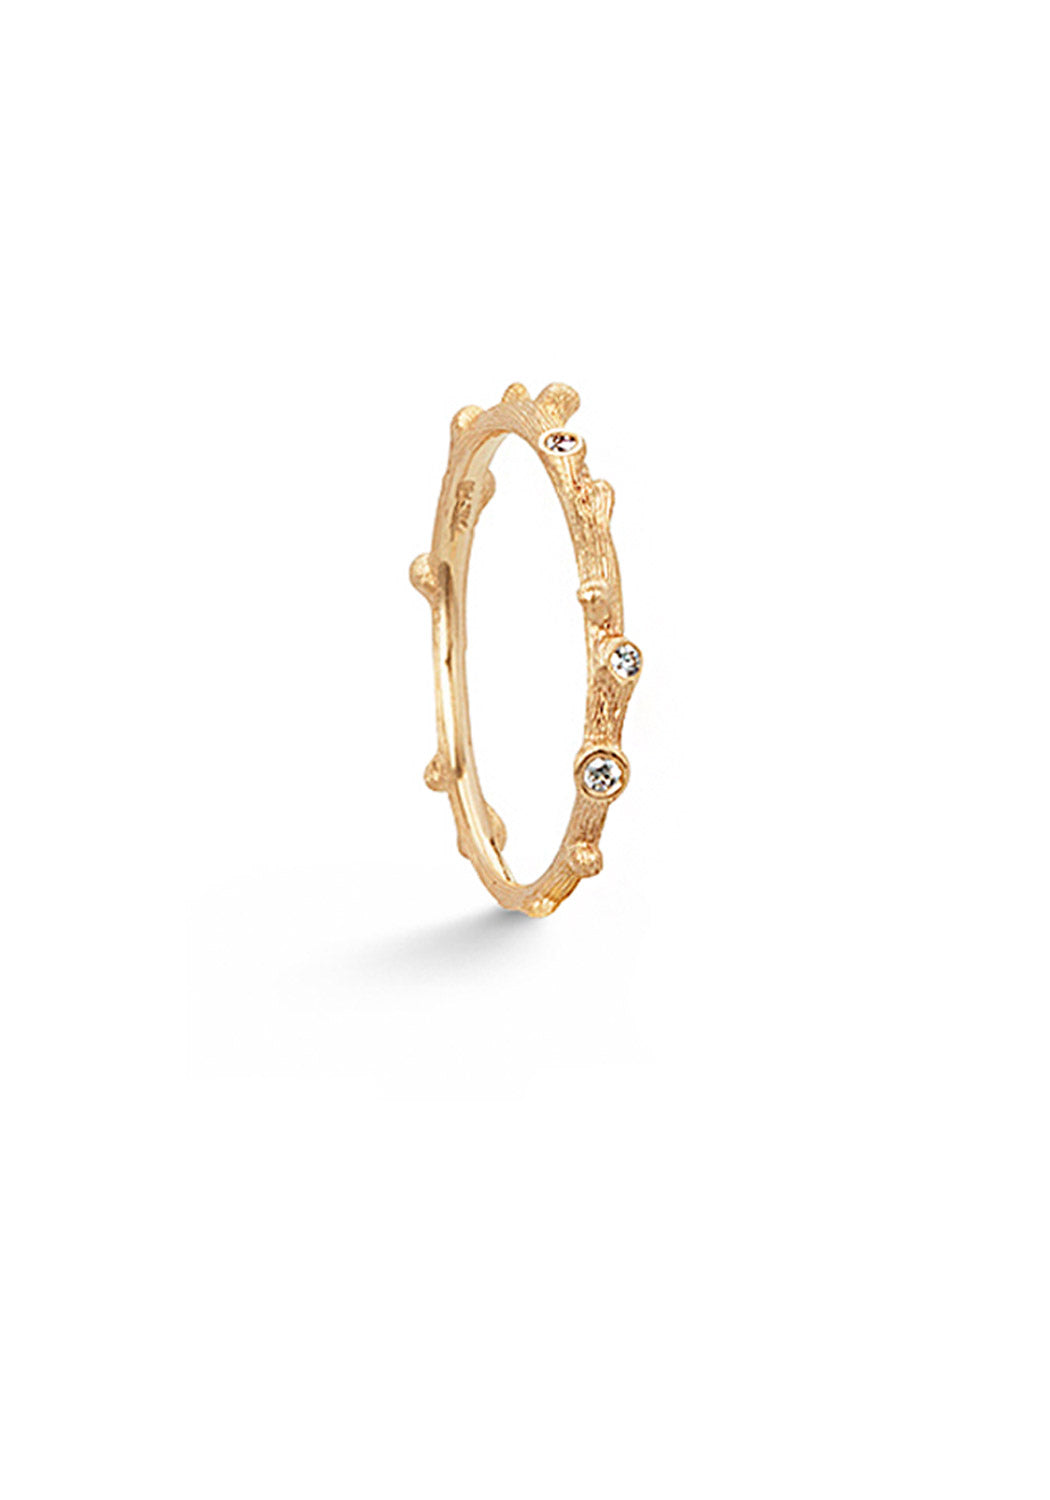 OLE LYNGGAARD Nature Yellow Gold & Diamond Ring